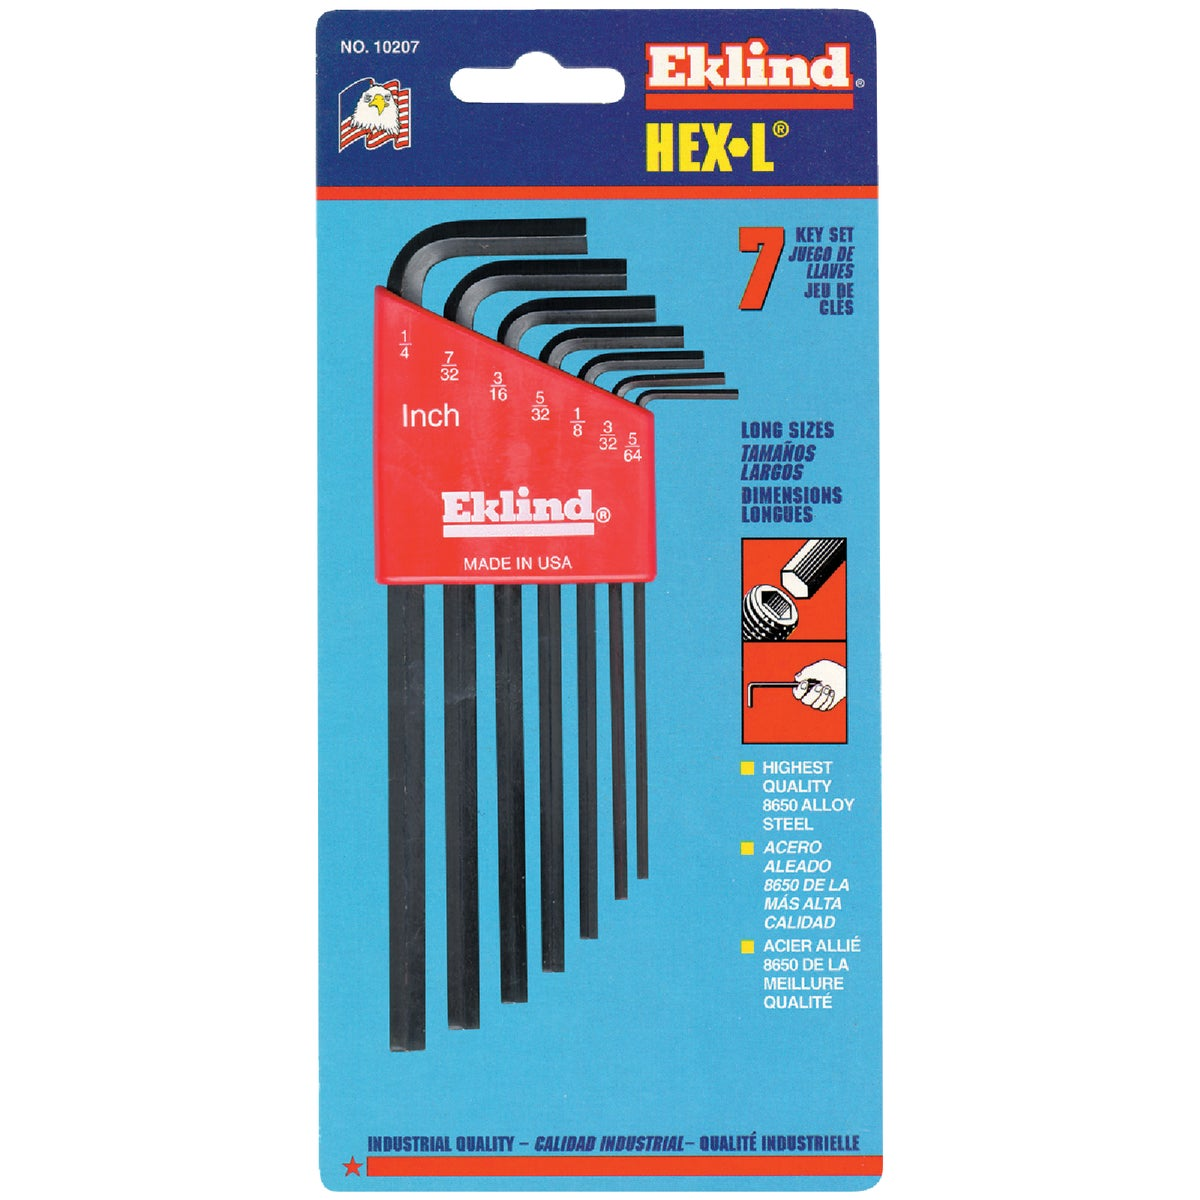 7PC LONG HEX KEY - 10207 by Eklind